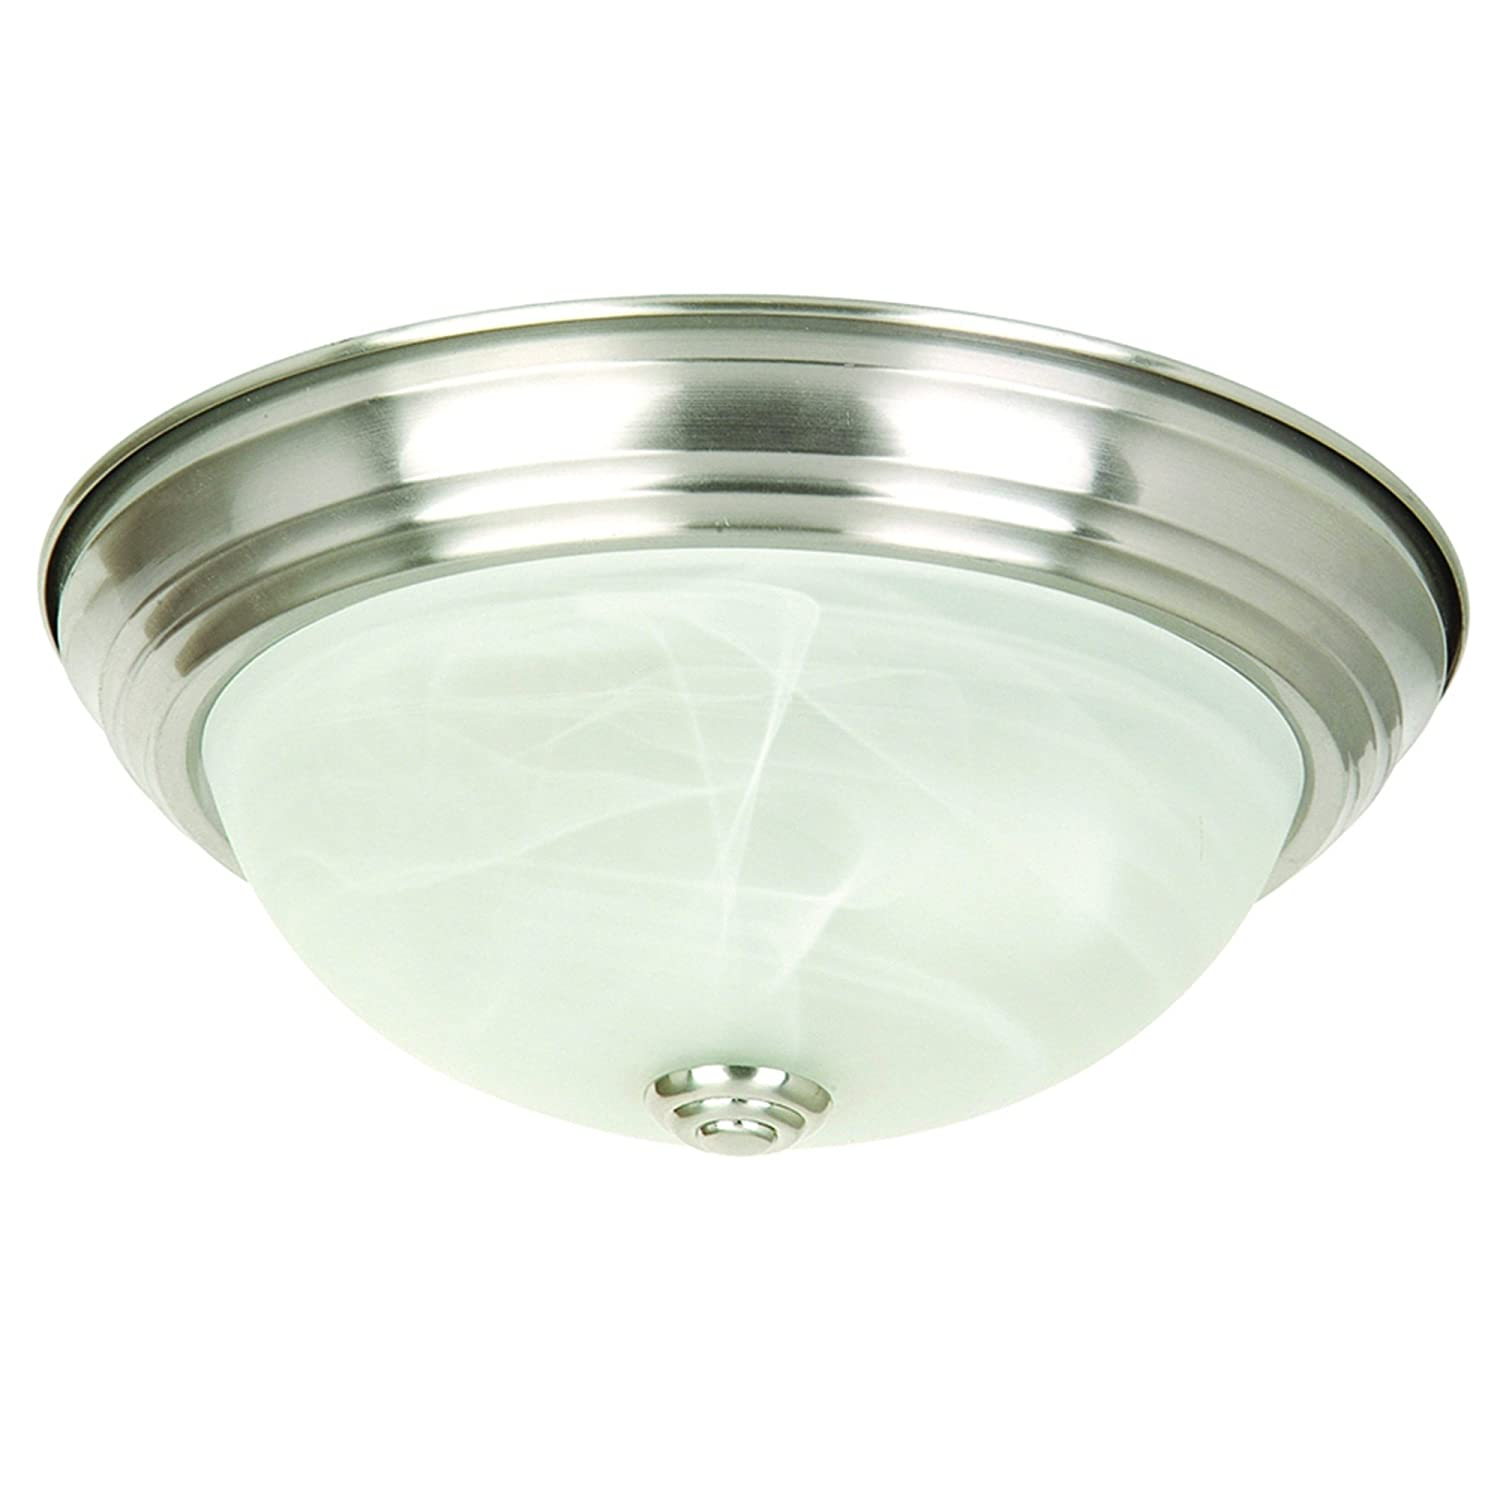 Yosemite Home Decor JK101-11WH 2-Light Flush Mount with Marble Glass Shade, White Frame, 11-Inch